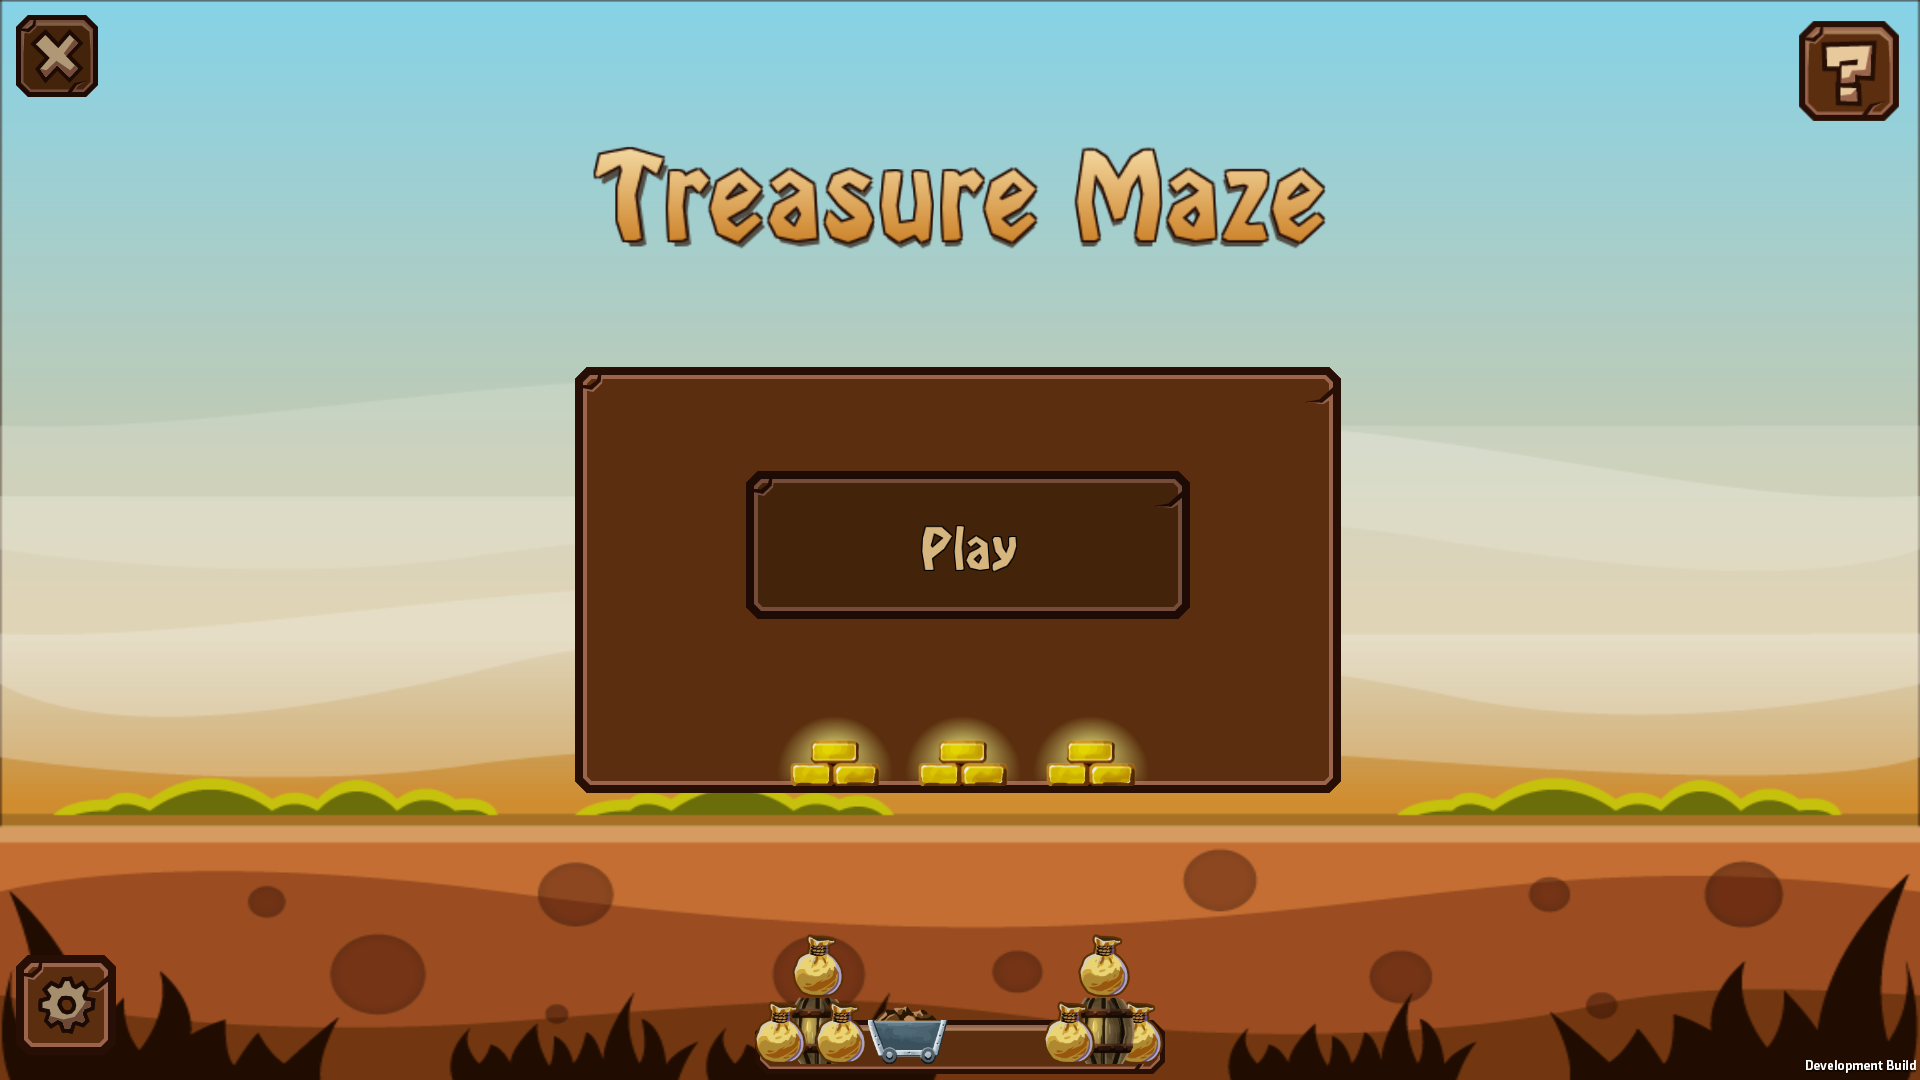 Treasure Maze 2_02_2016 5_23_32 AM.png